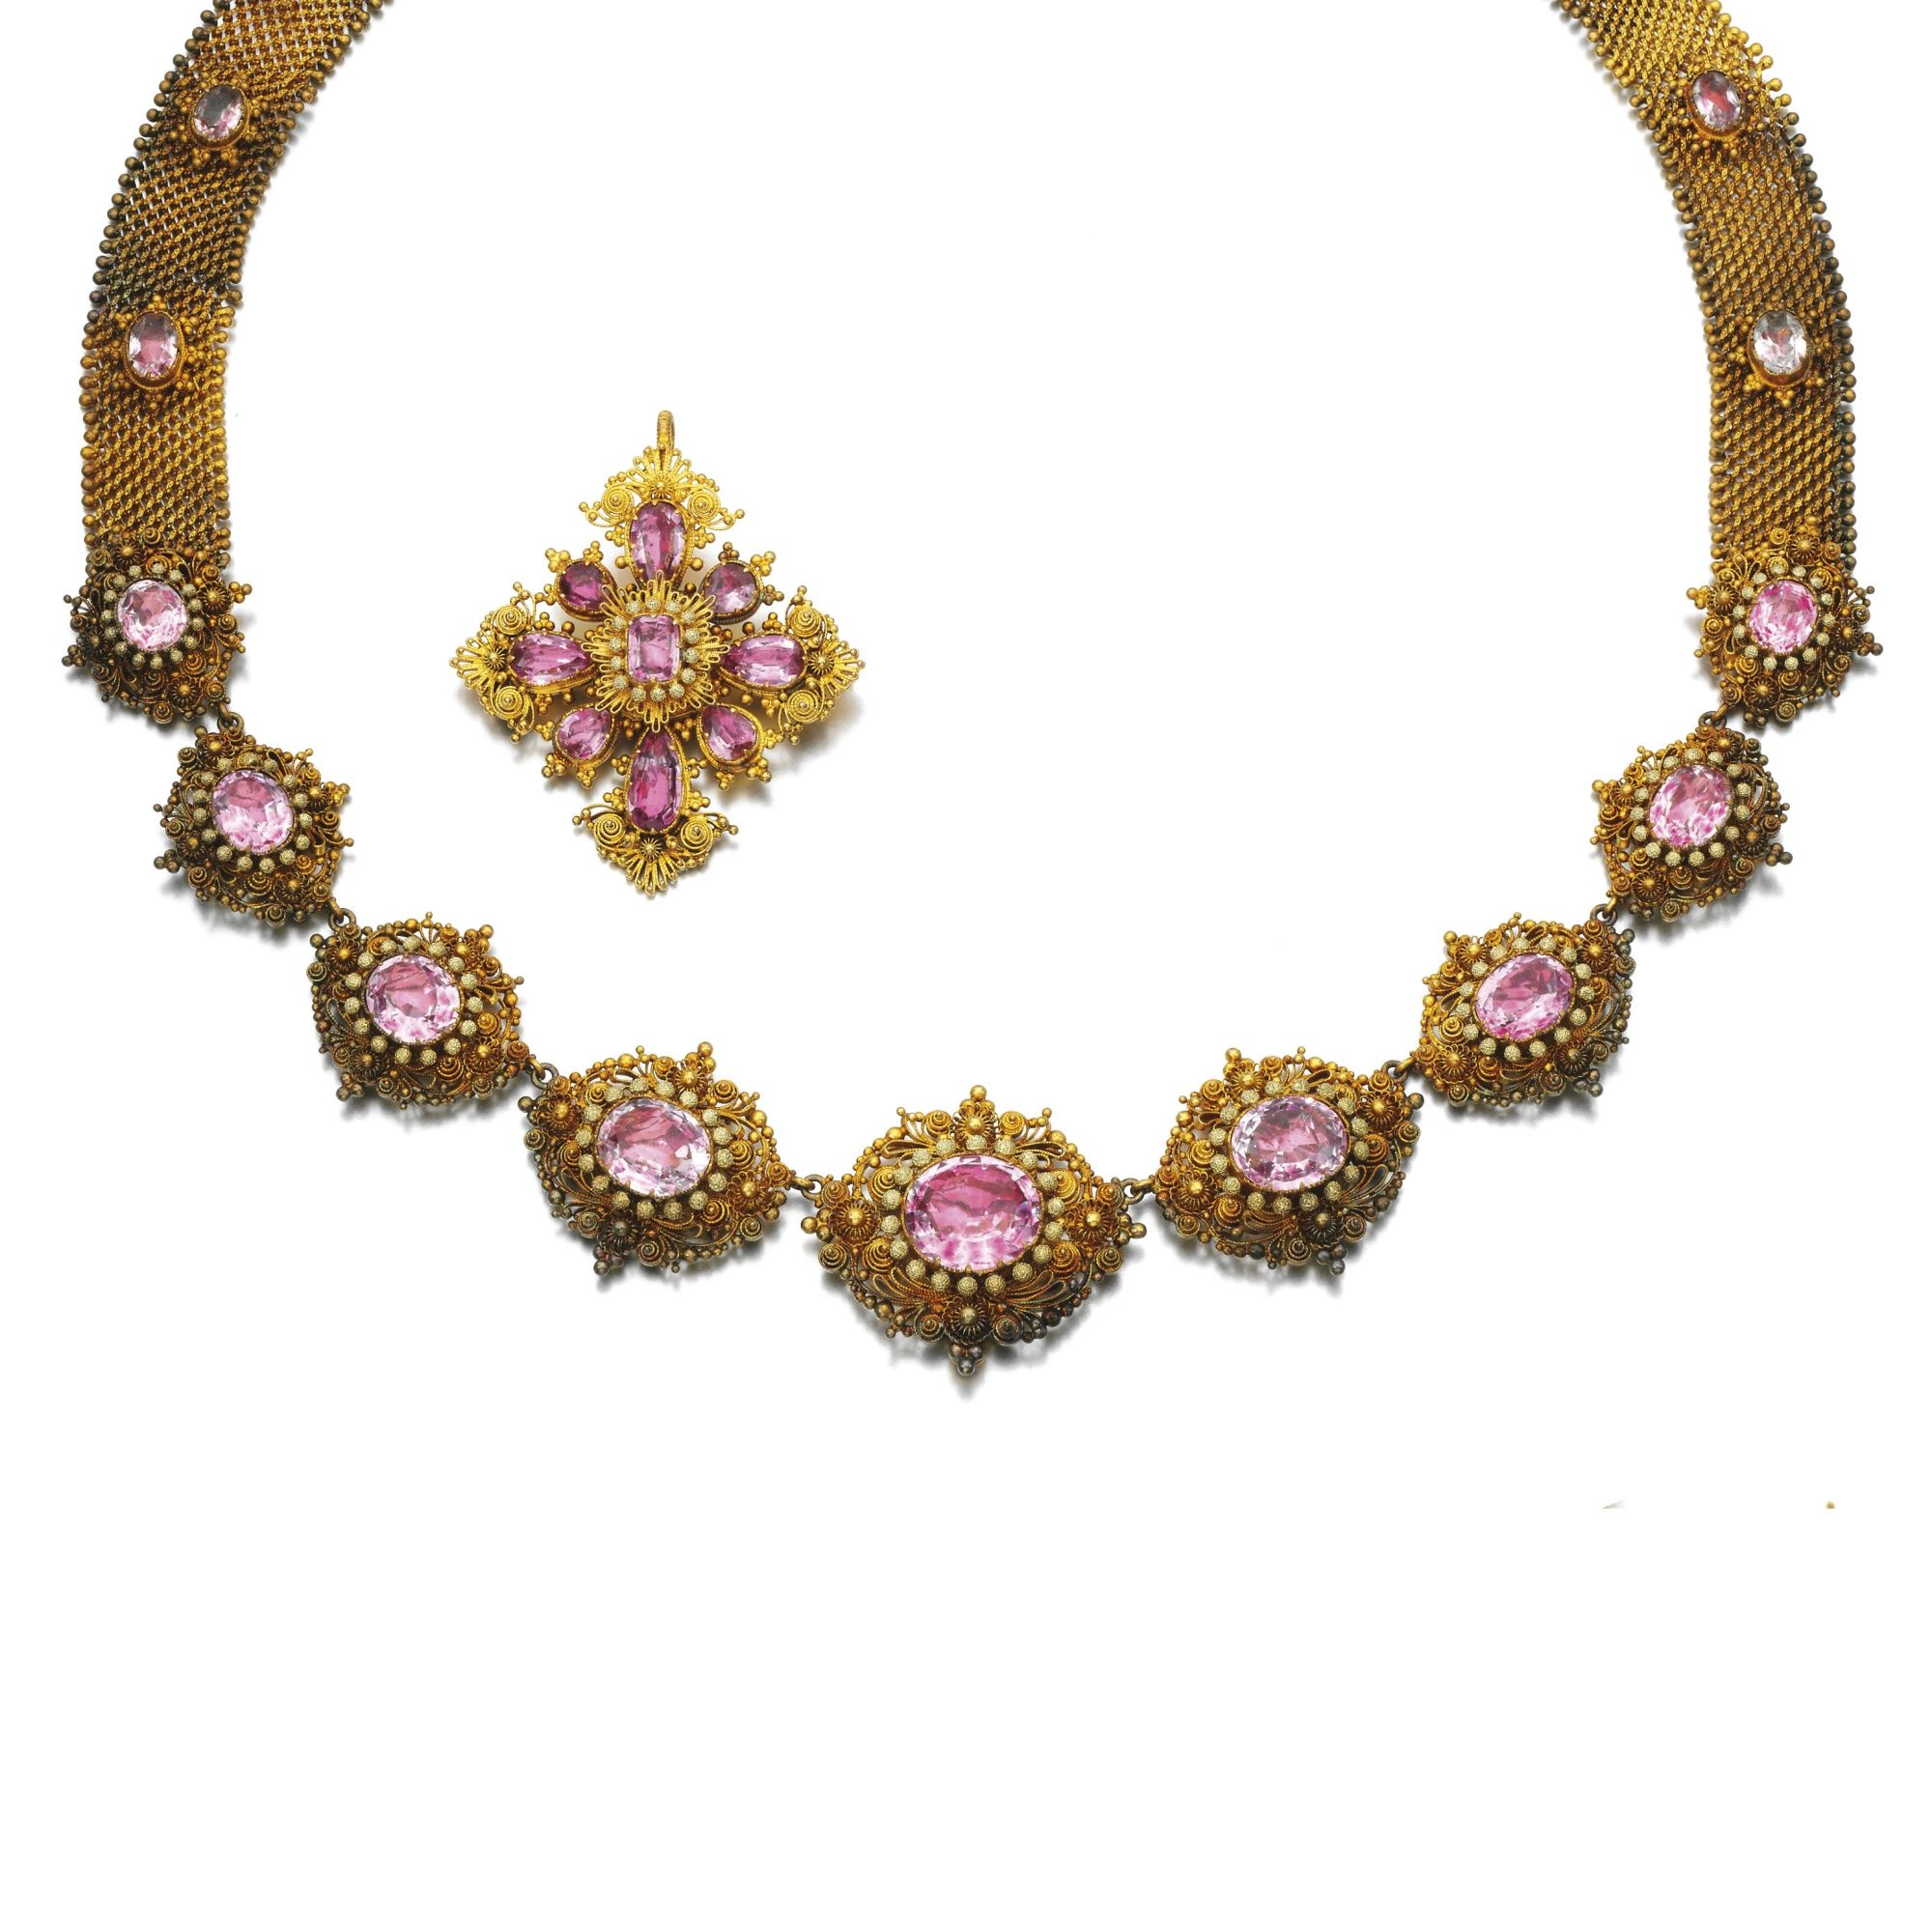 Gold and topaz necklace and broochpendant early th century